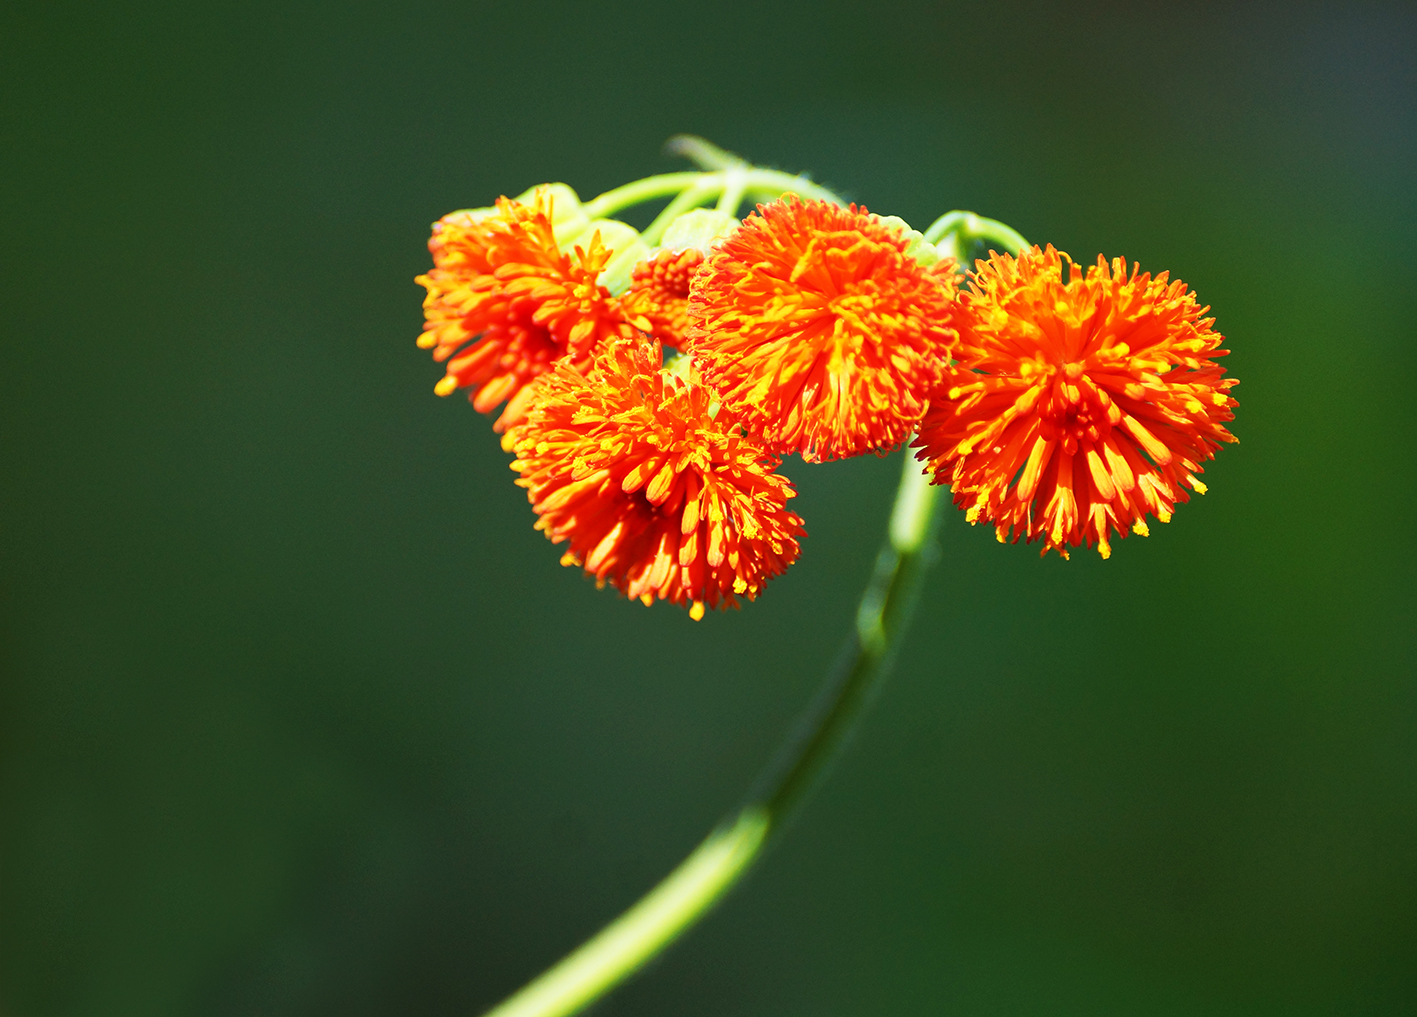 artistic orange flower picture